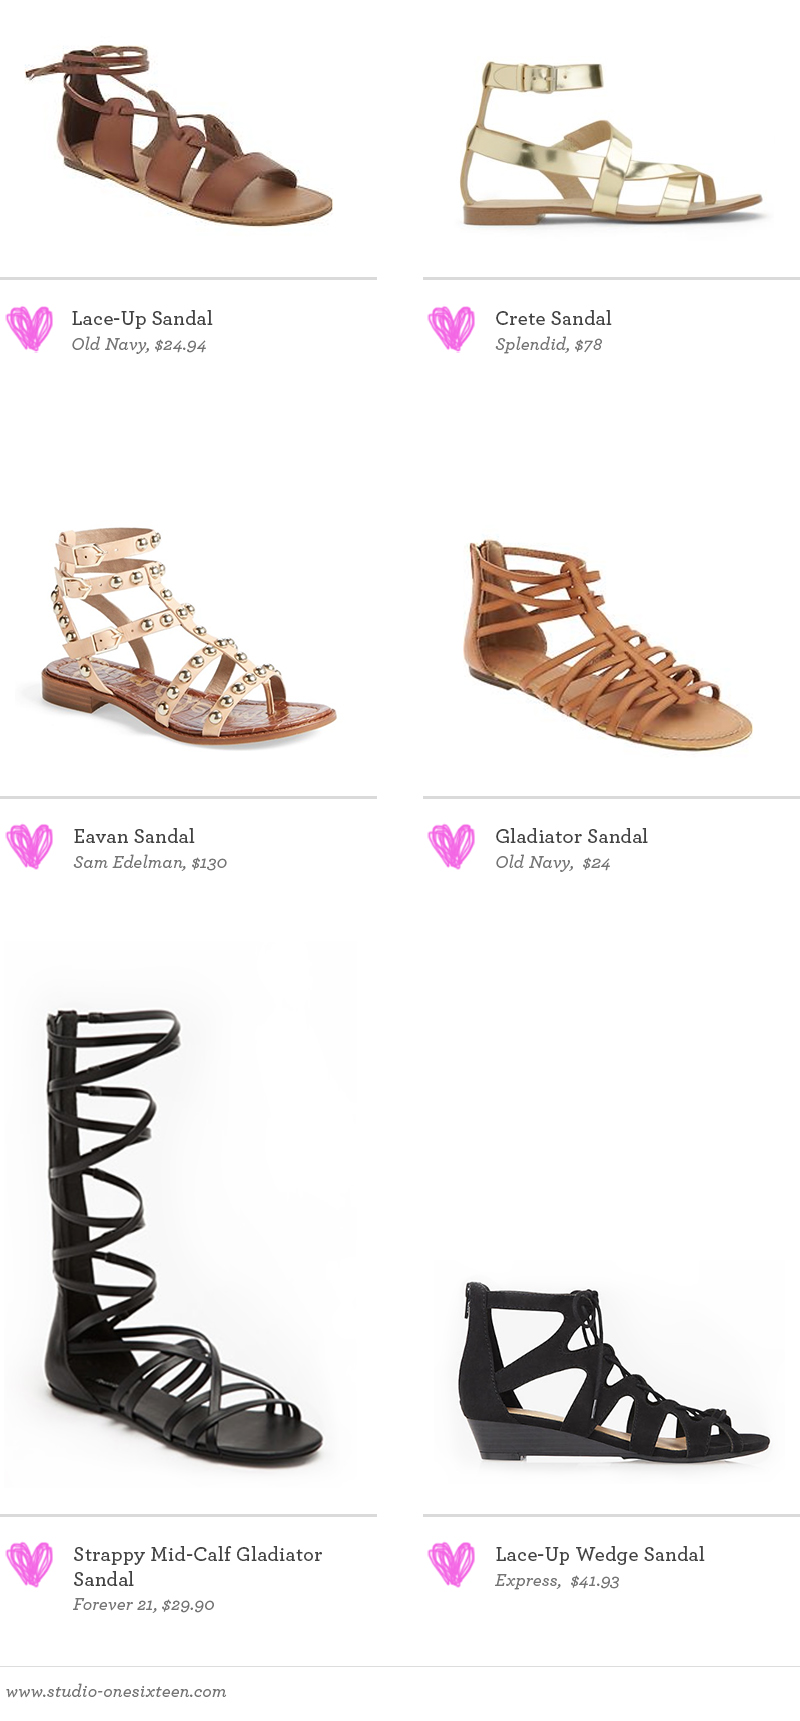 Lace-Up Sandal by Old Navy  /  Crete Sandal by Splendid  /  Eavan Sandal by Sam Edelman  /  Gladiator Sandal by Old Navy  /  Strappy Mid-Calf Gladiator Sandal by Forever 21  /  Lace-Up Wedge Sandal by Express